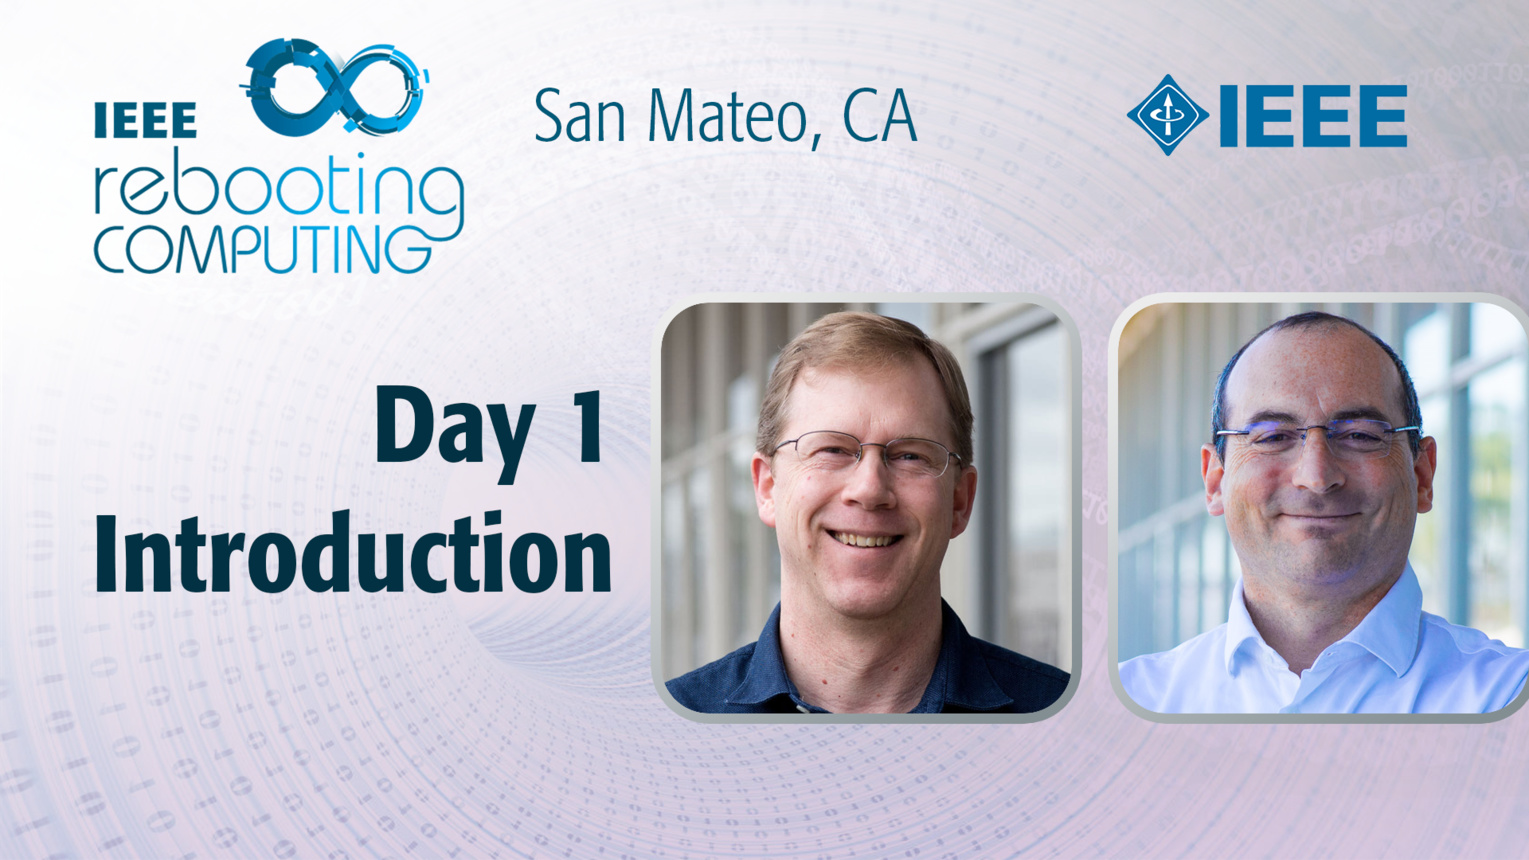 Day 1 Introduction - Cullen Bash & Paolo Faraboschi - ICRC San Mateo, 2019